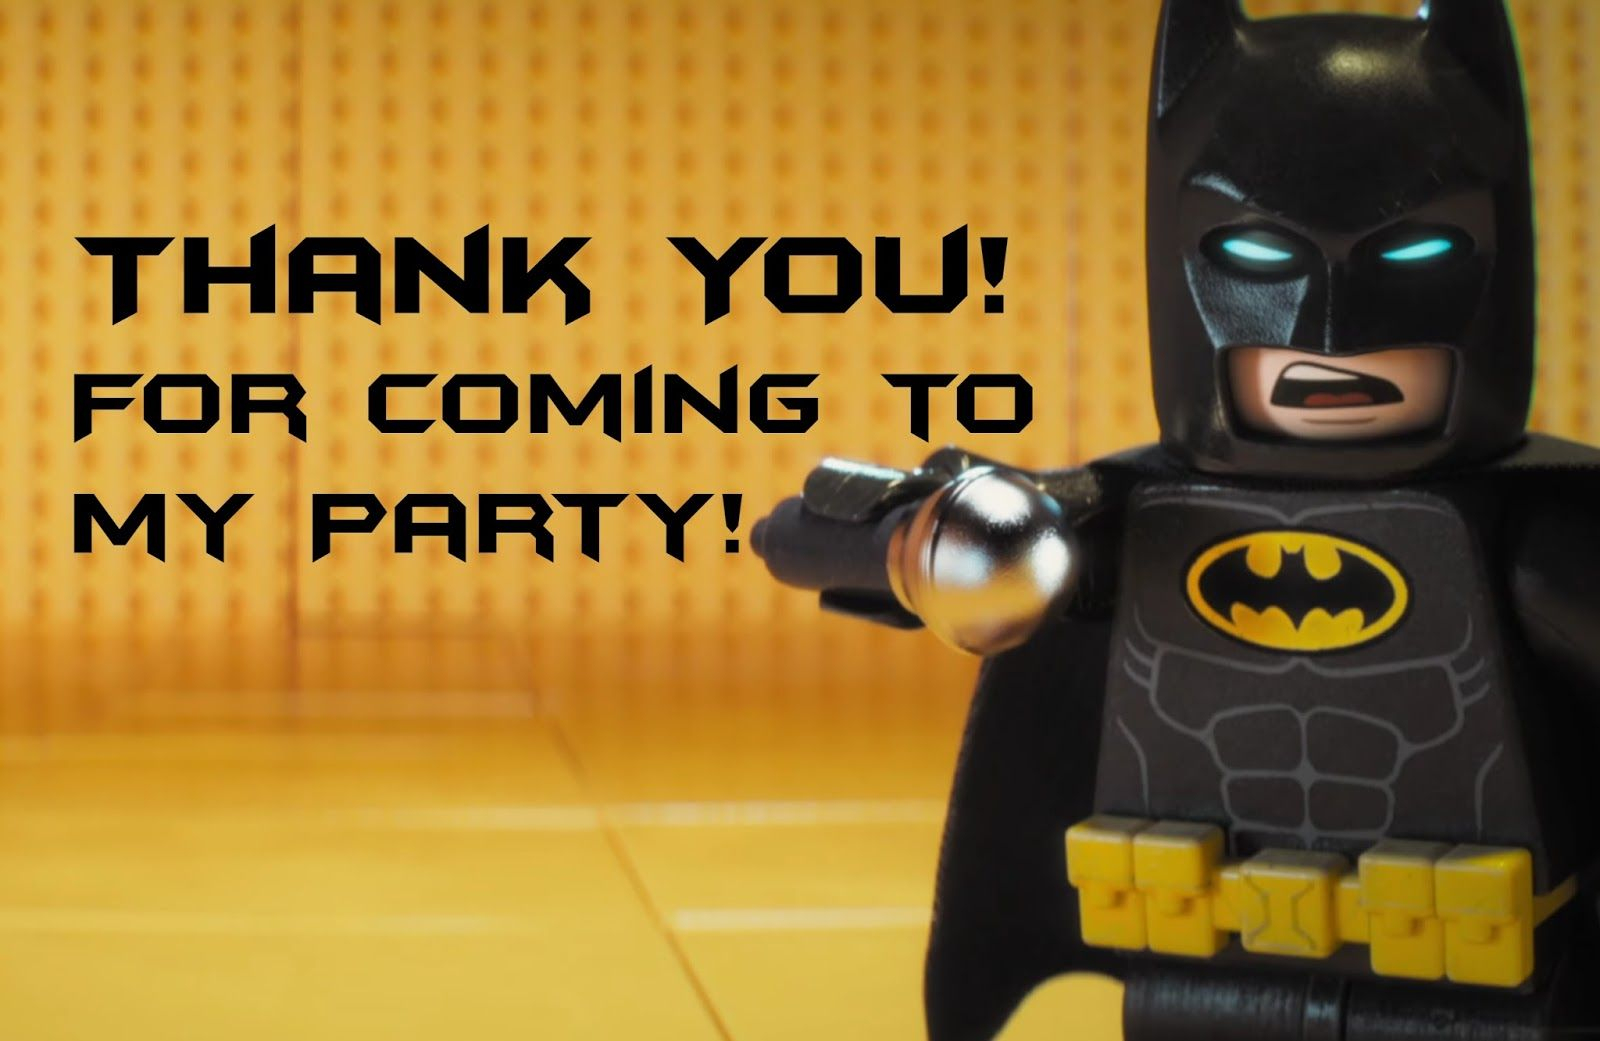 Lego Batman Thank You Cards | Lego Batman-Super Heros Printables - Free Printable Lego Batman